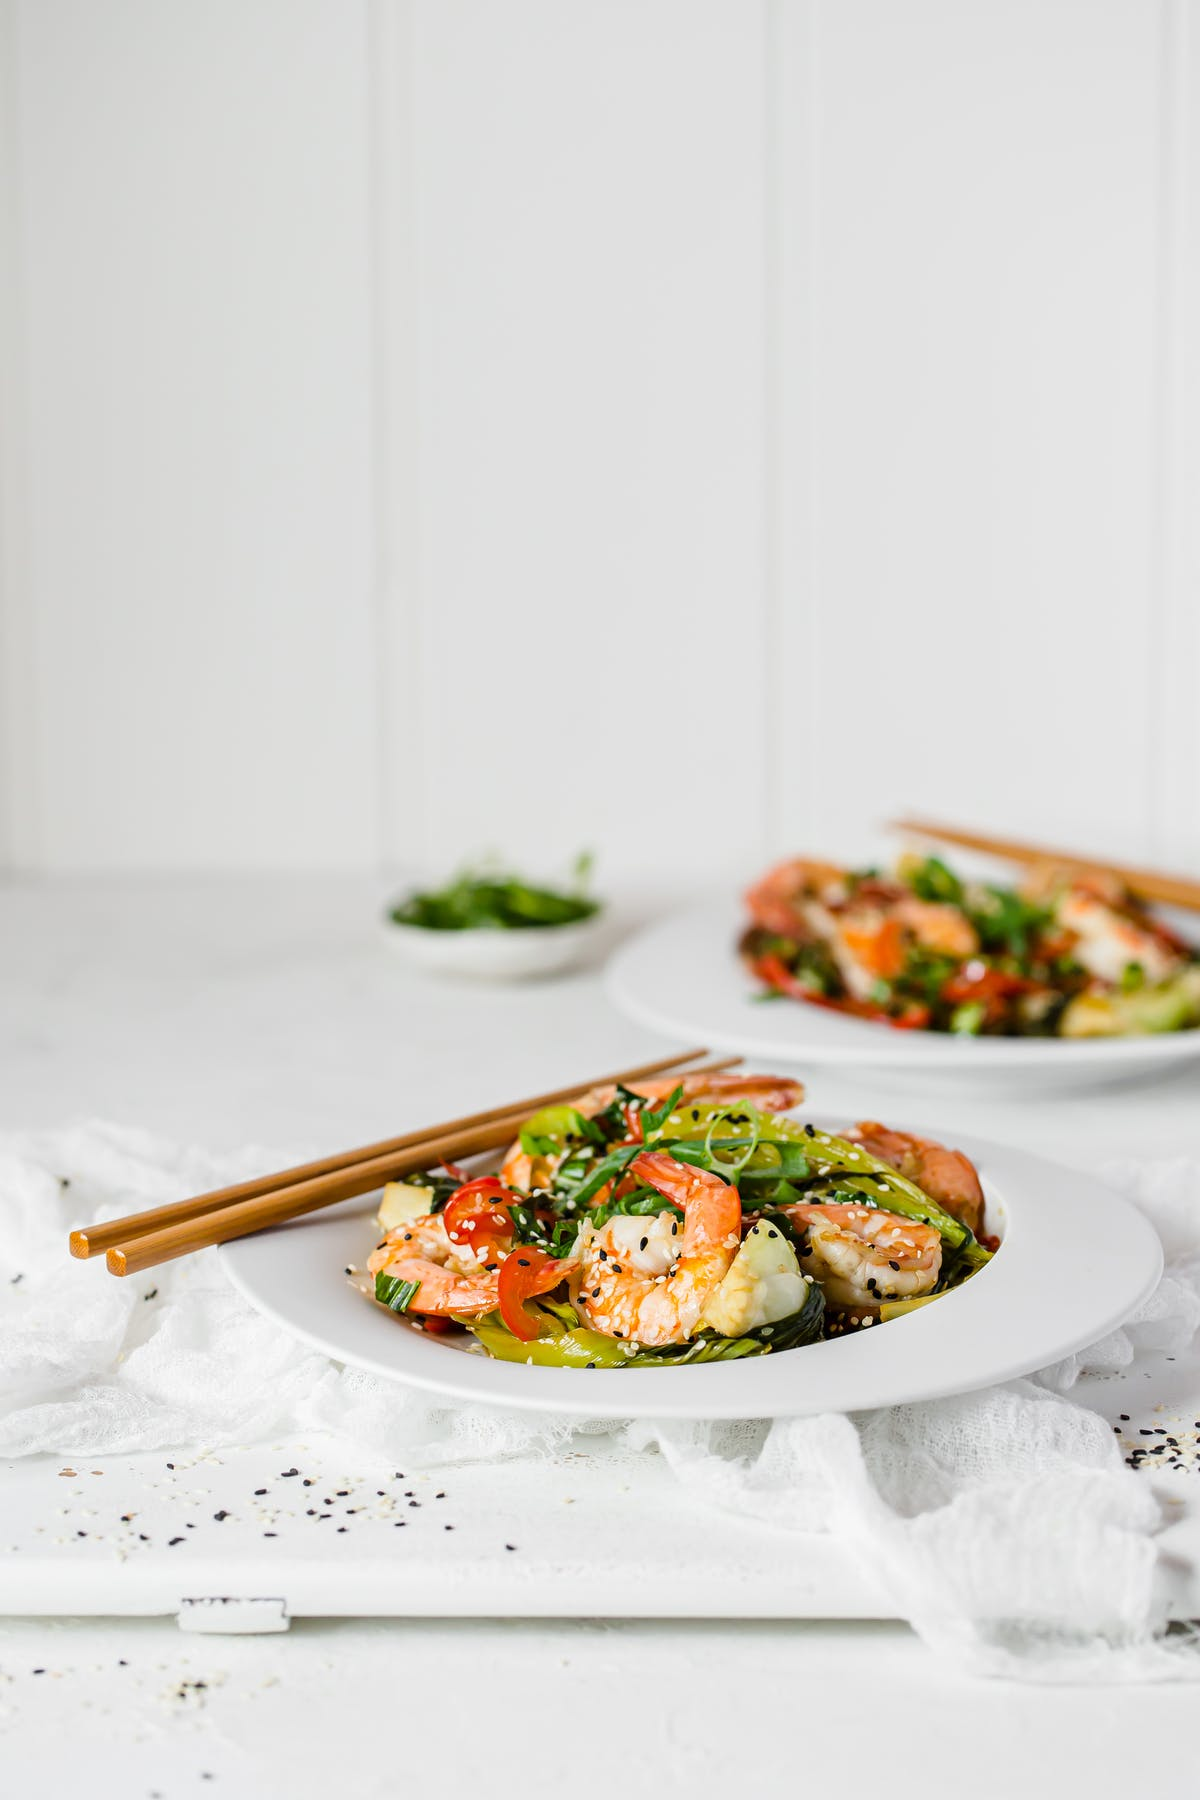 Low-carb garlic and sesame prawns